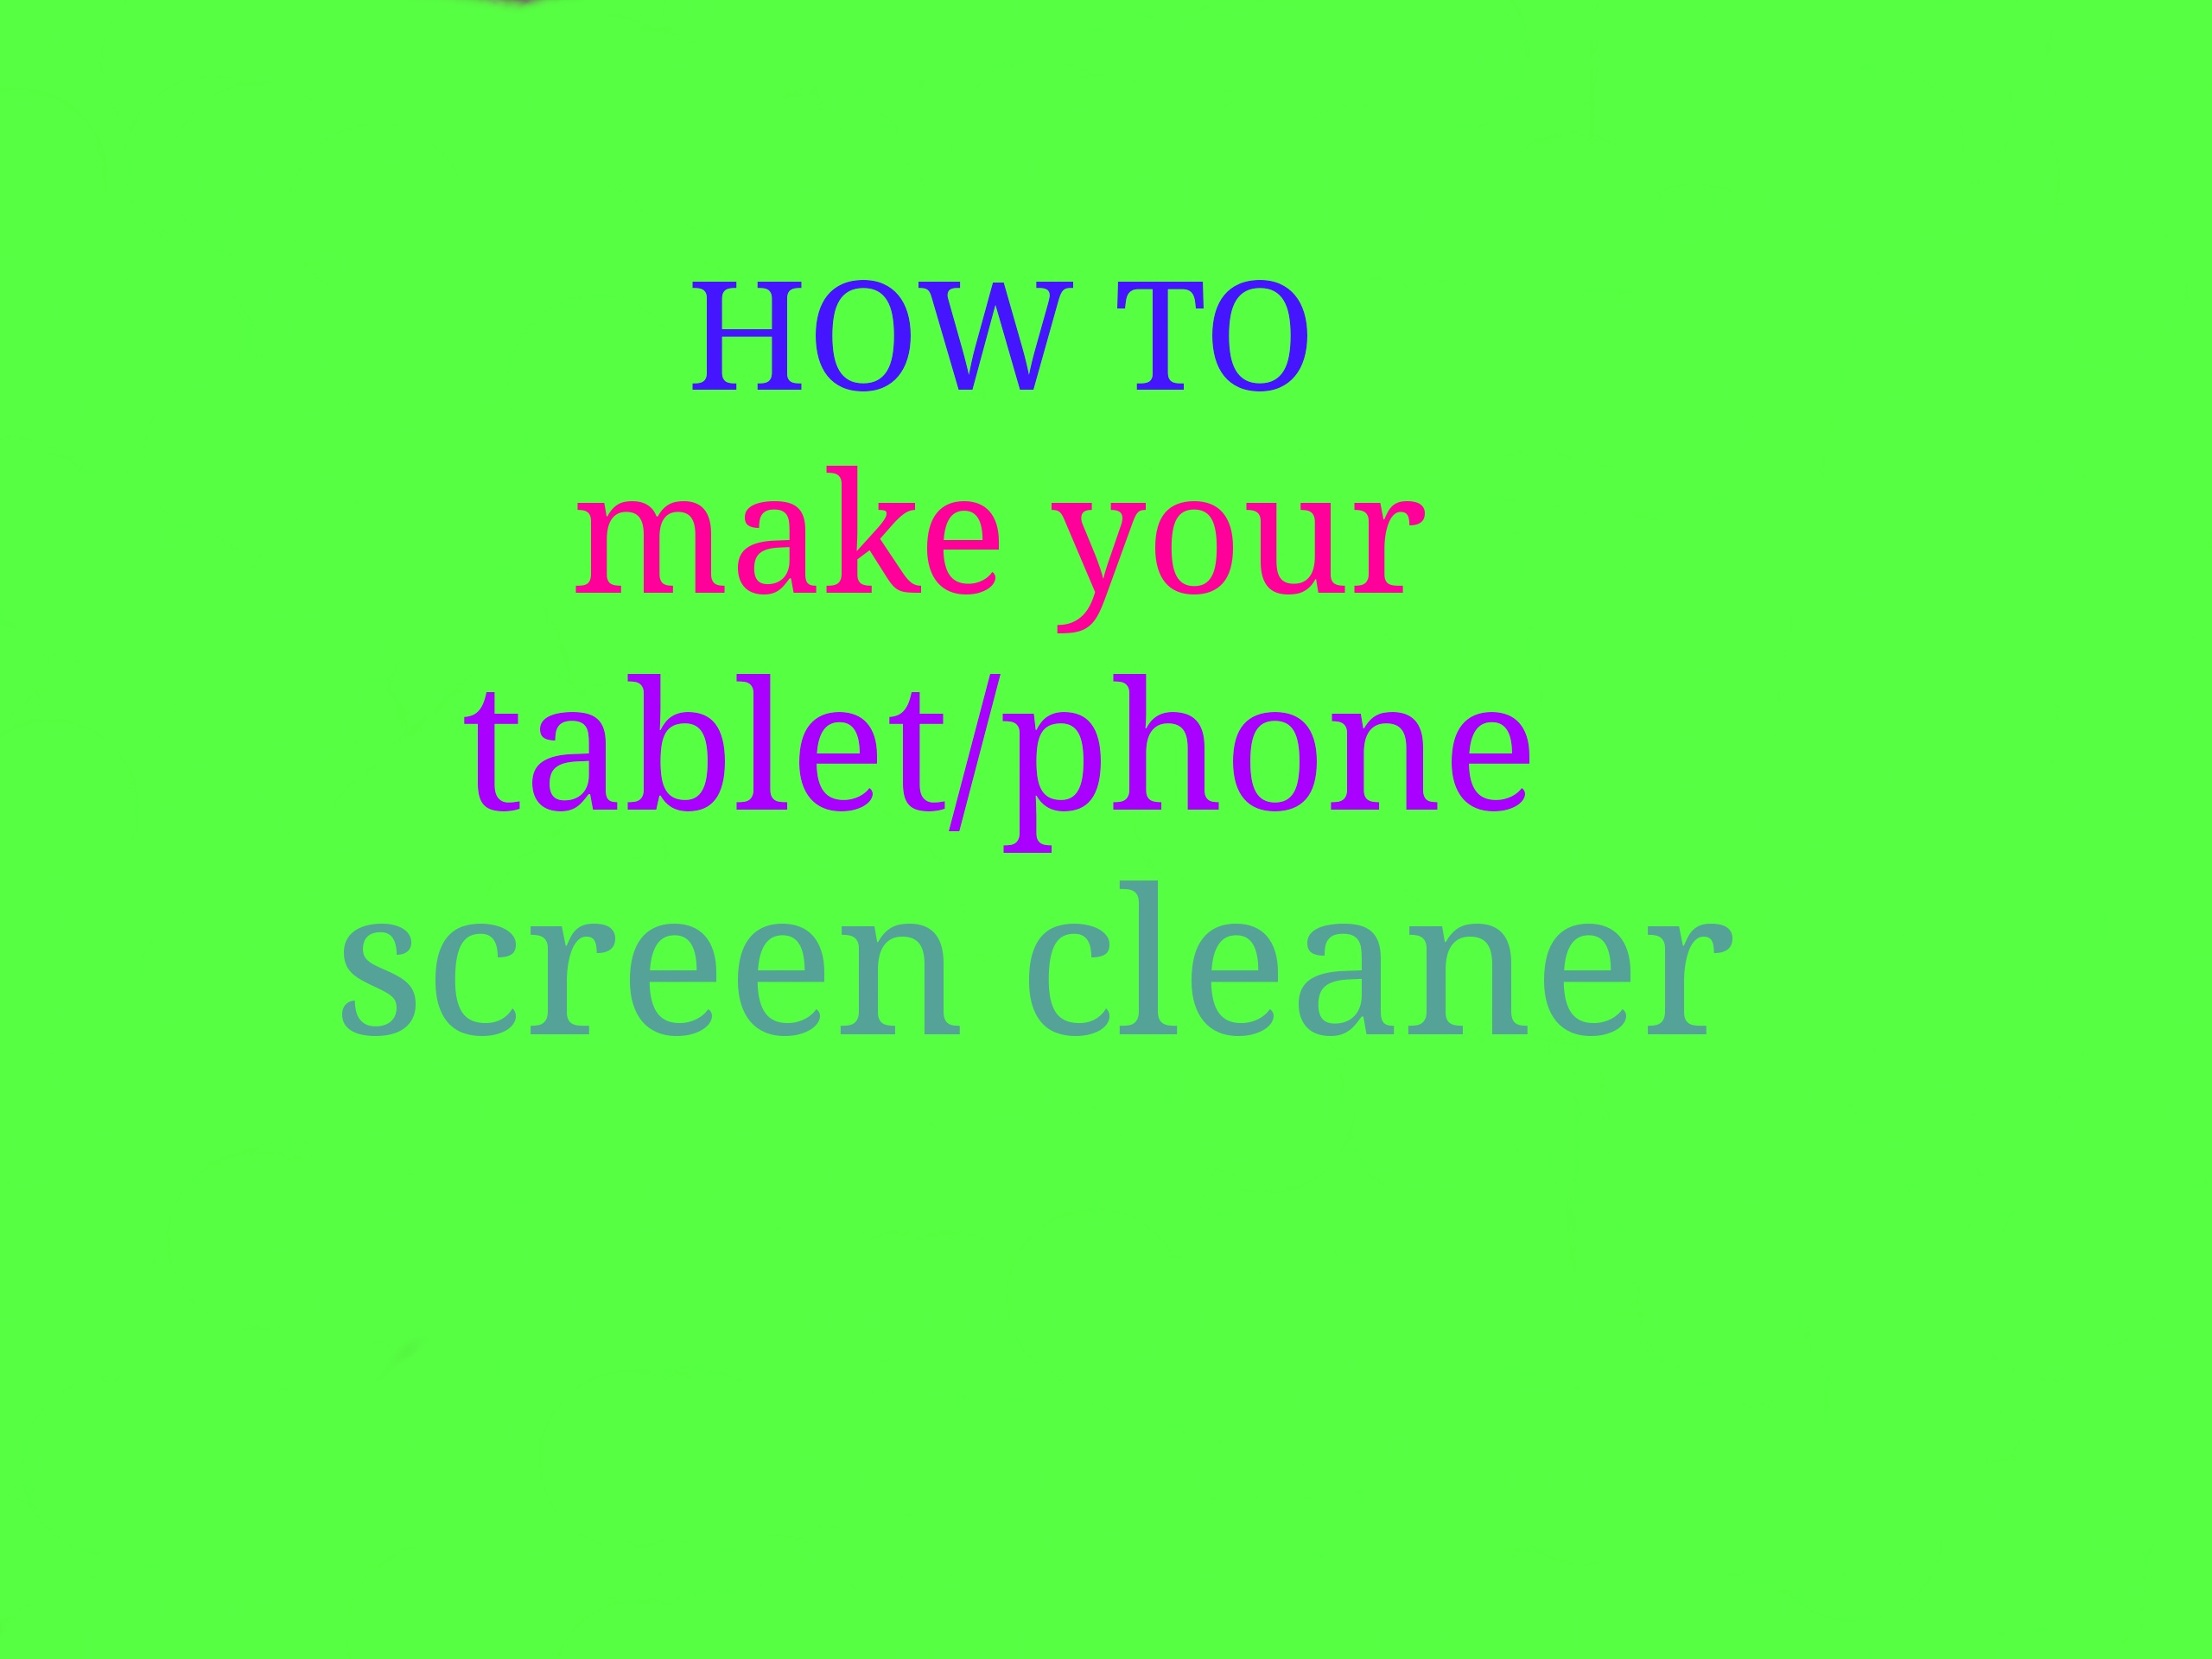 how to make your tablet/phone screen cleaner